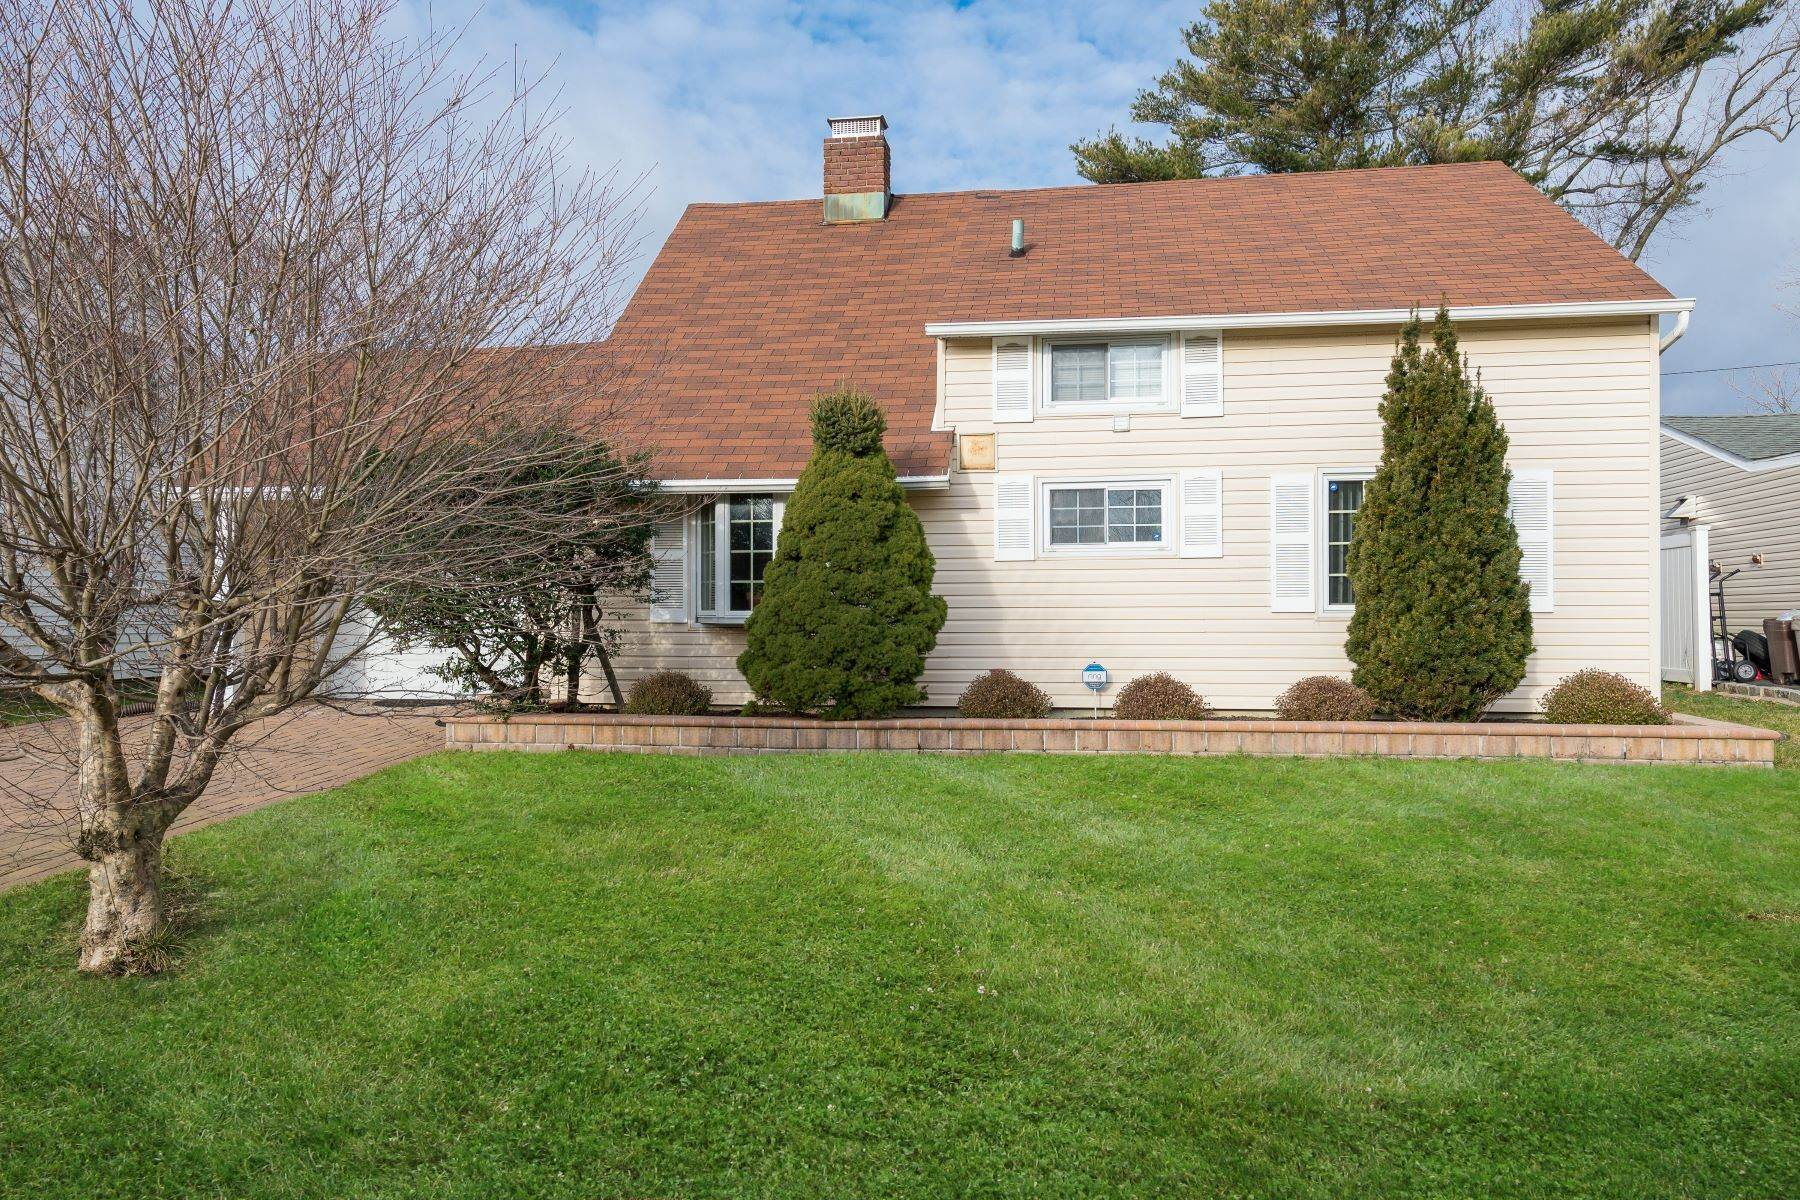 Single Family Homes for Sale at 235 Cypress Lane W, Westbury, Ny, 11590 235 Cypress Lane W Westbury, New York 11590 United States